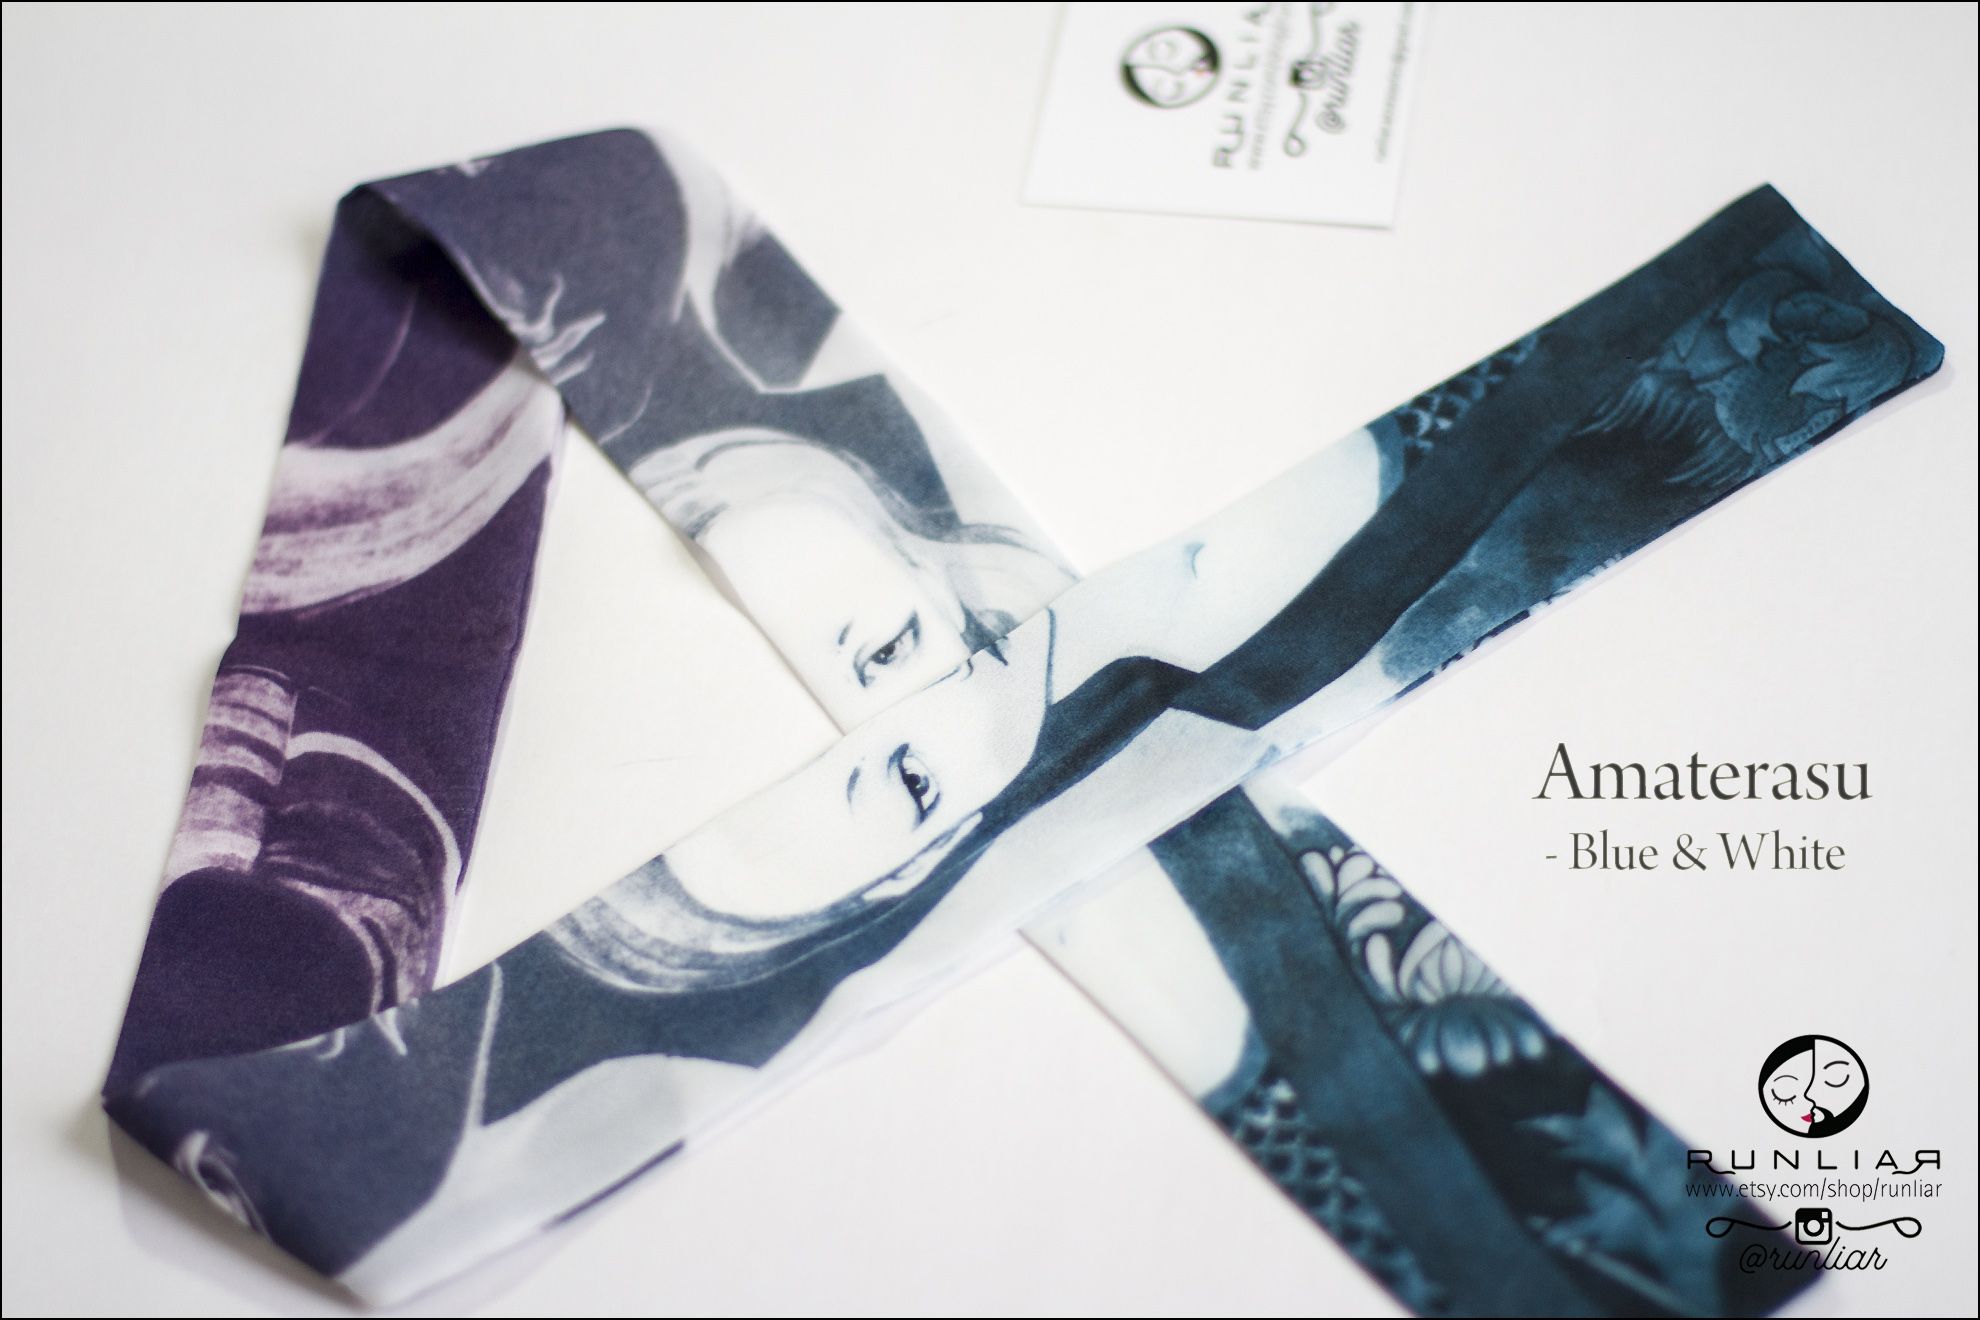 RUNLIAR Fashion Accessories : AMATERASU Ribbon Scarf - Blue & White.